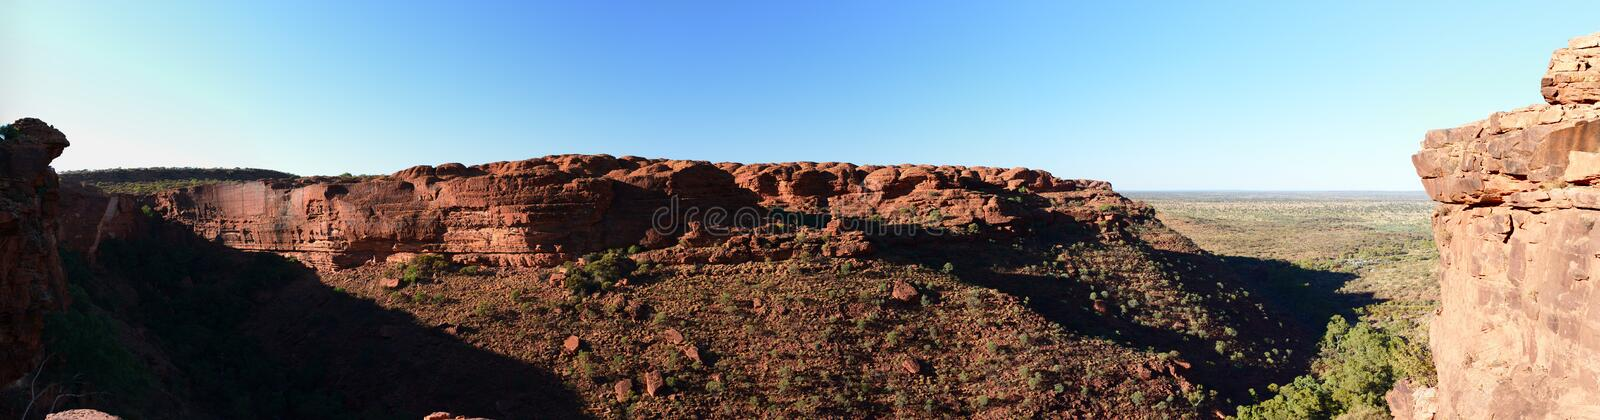 Kings Canyon. Watarrka National Park. Northern Territory. Australia royalty free stock image